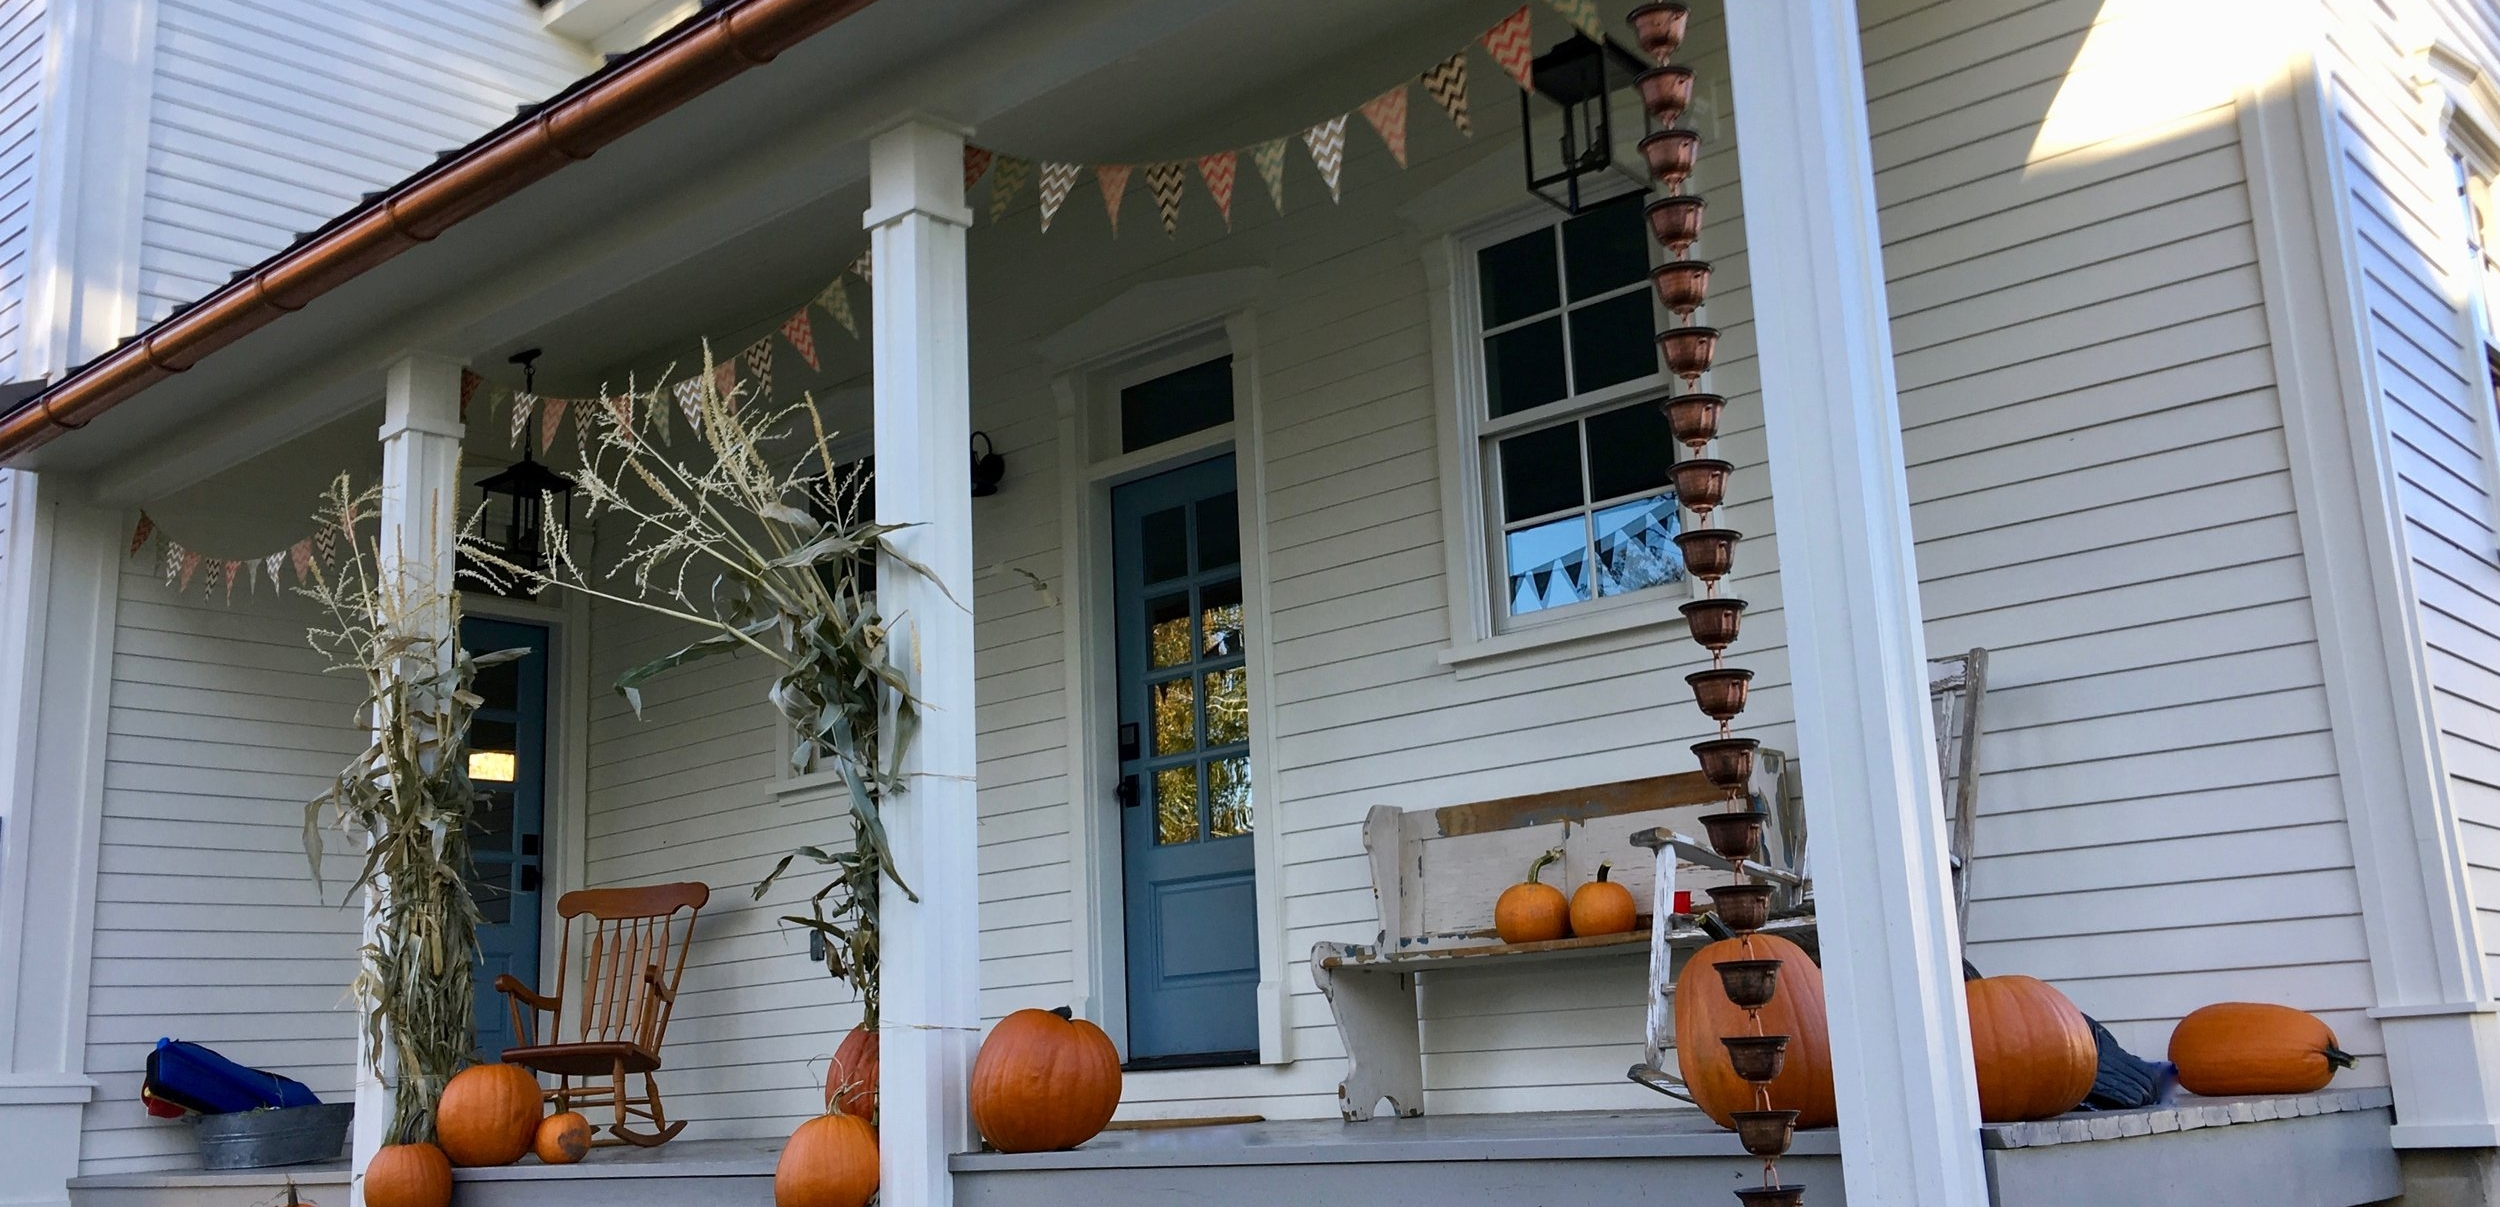 Fall decorations on the porch